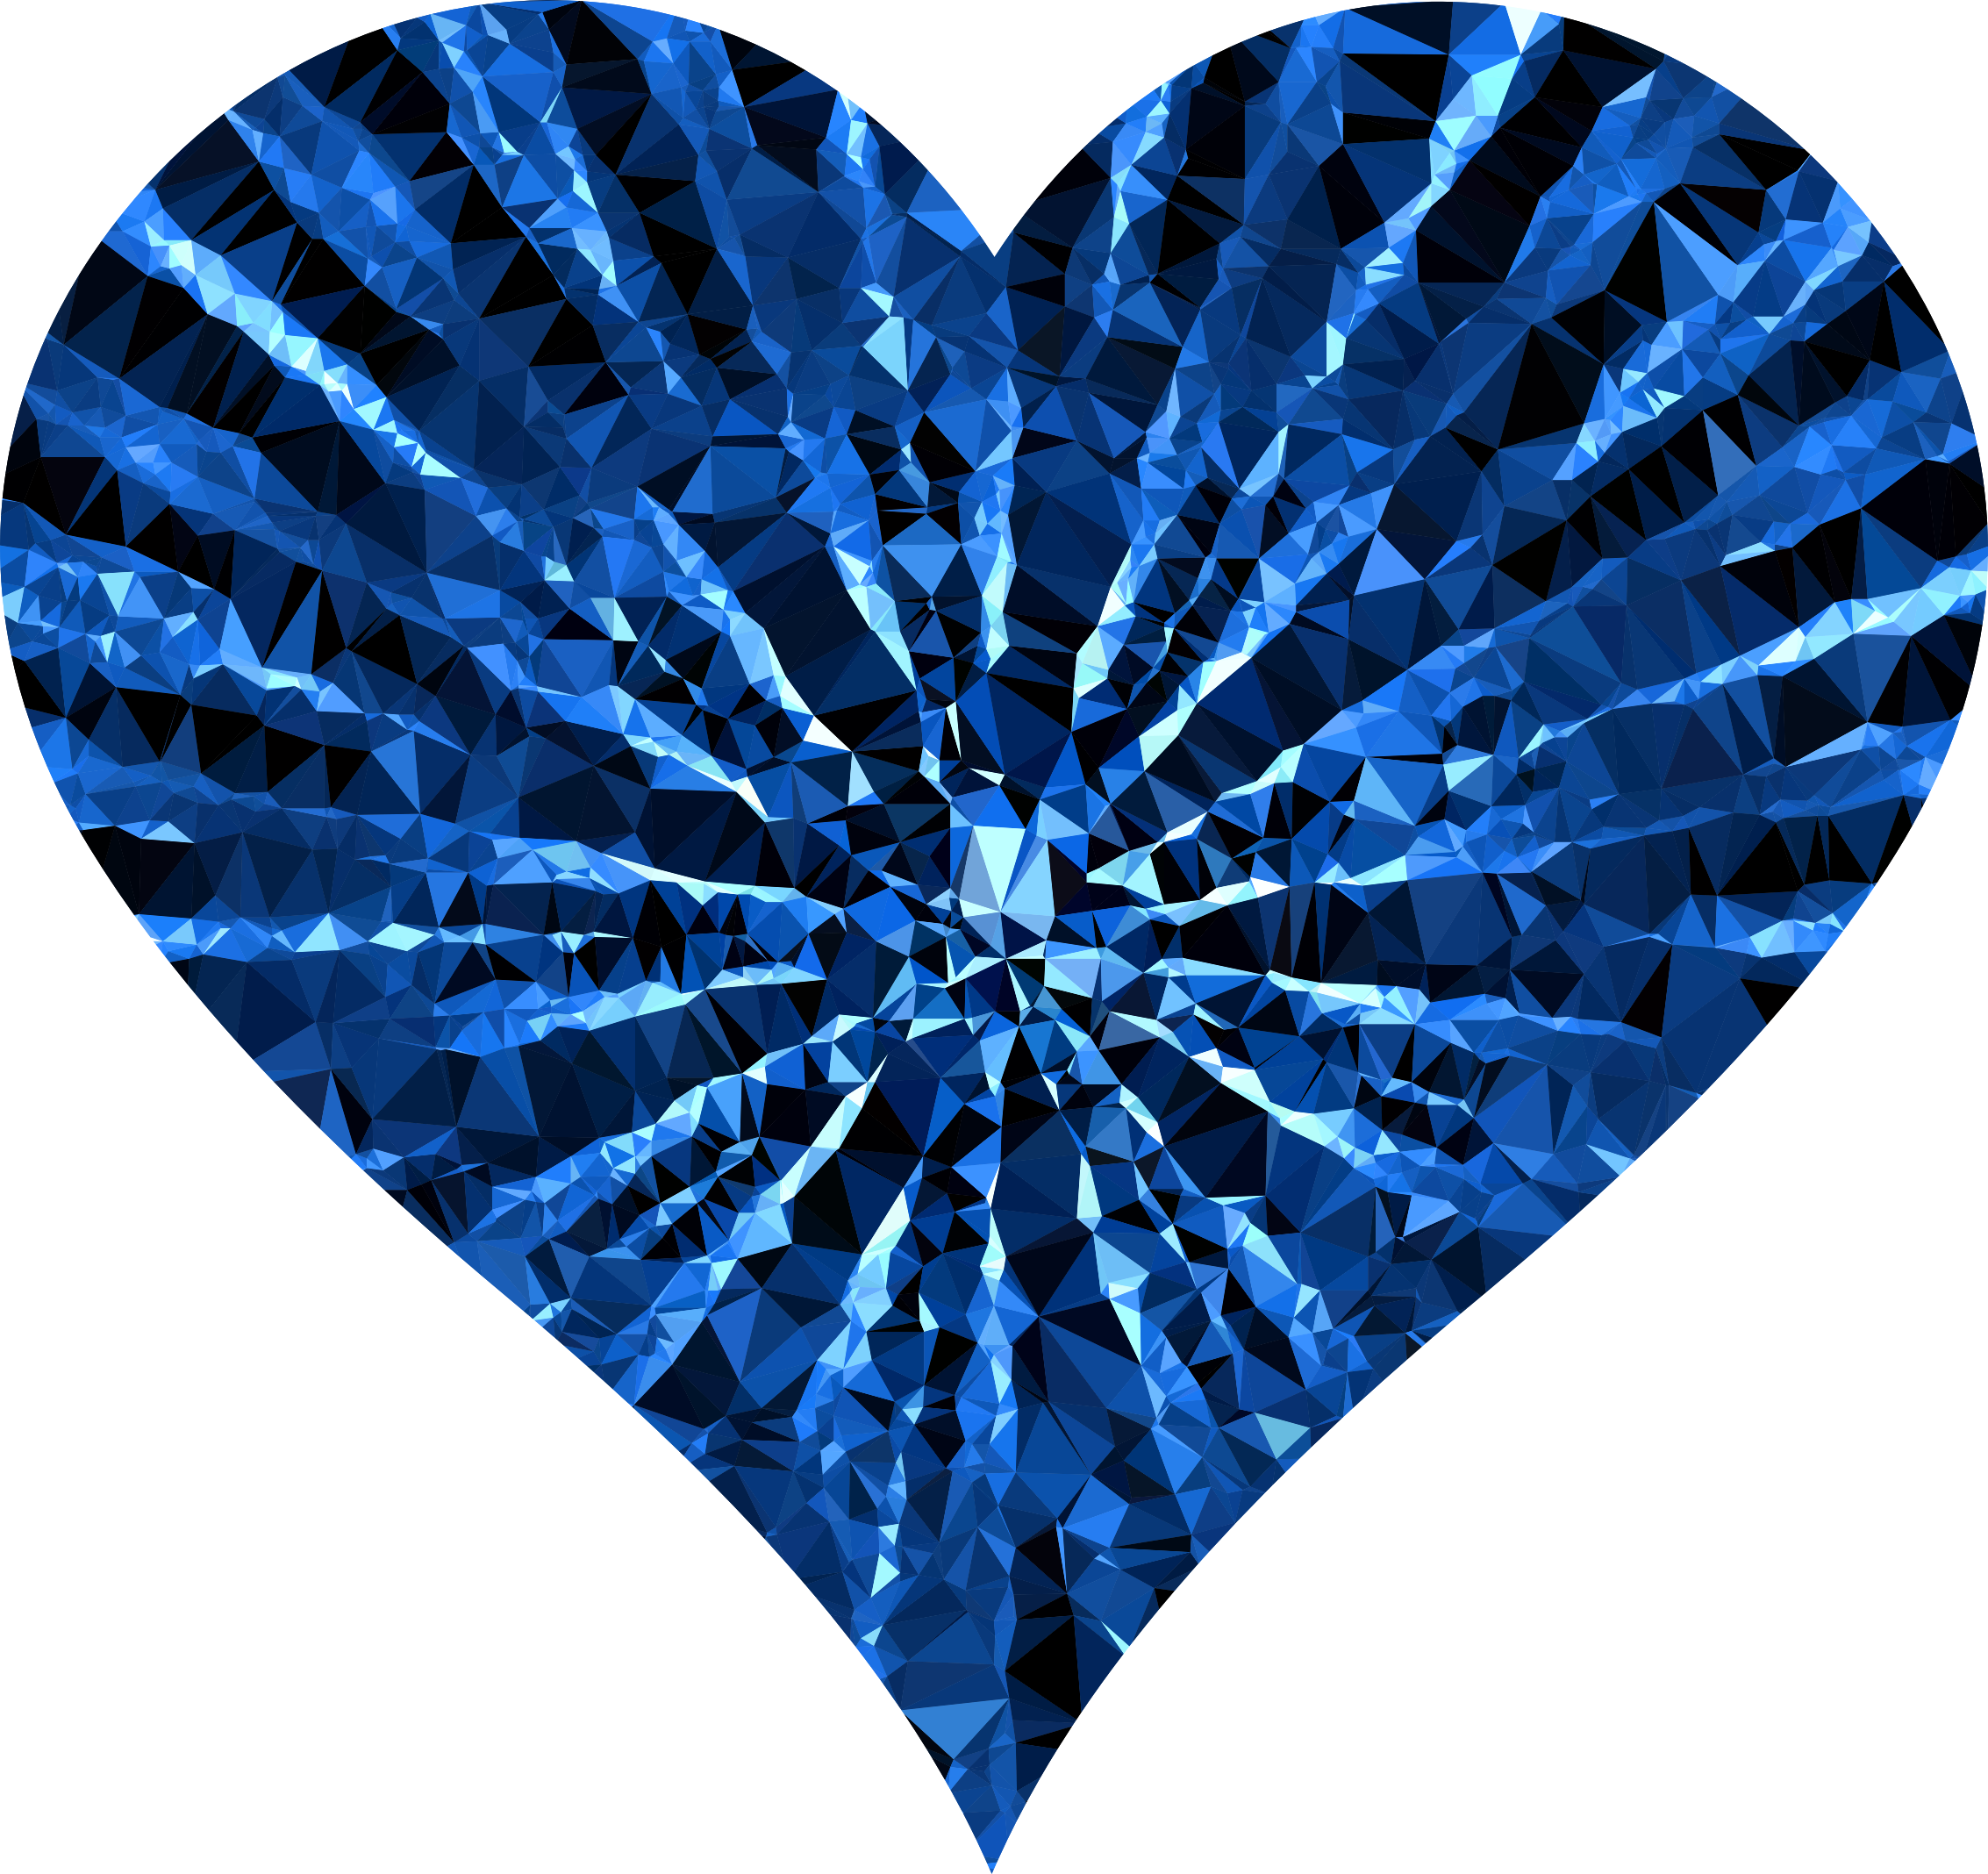 Blue heart clipart transparent png Clipart - Low Poly Shattered Heart Blue png